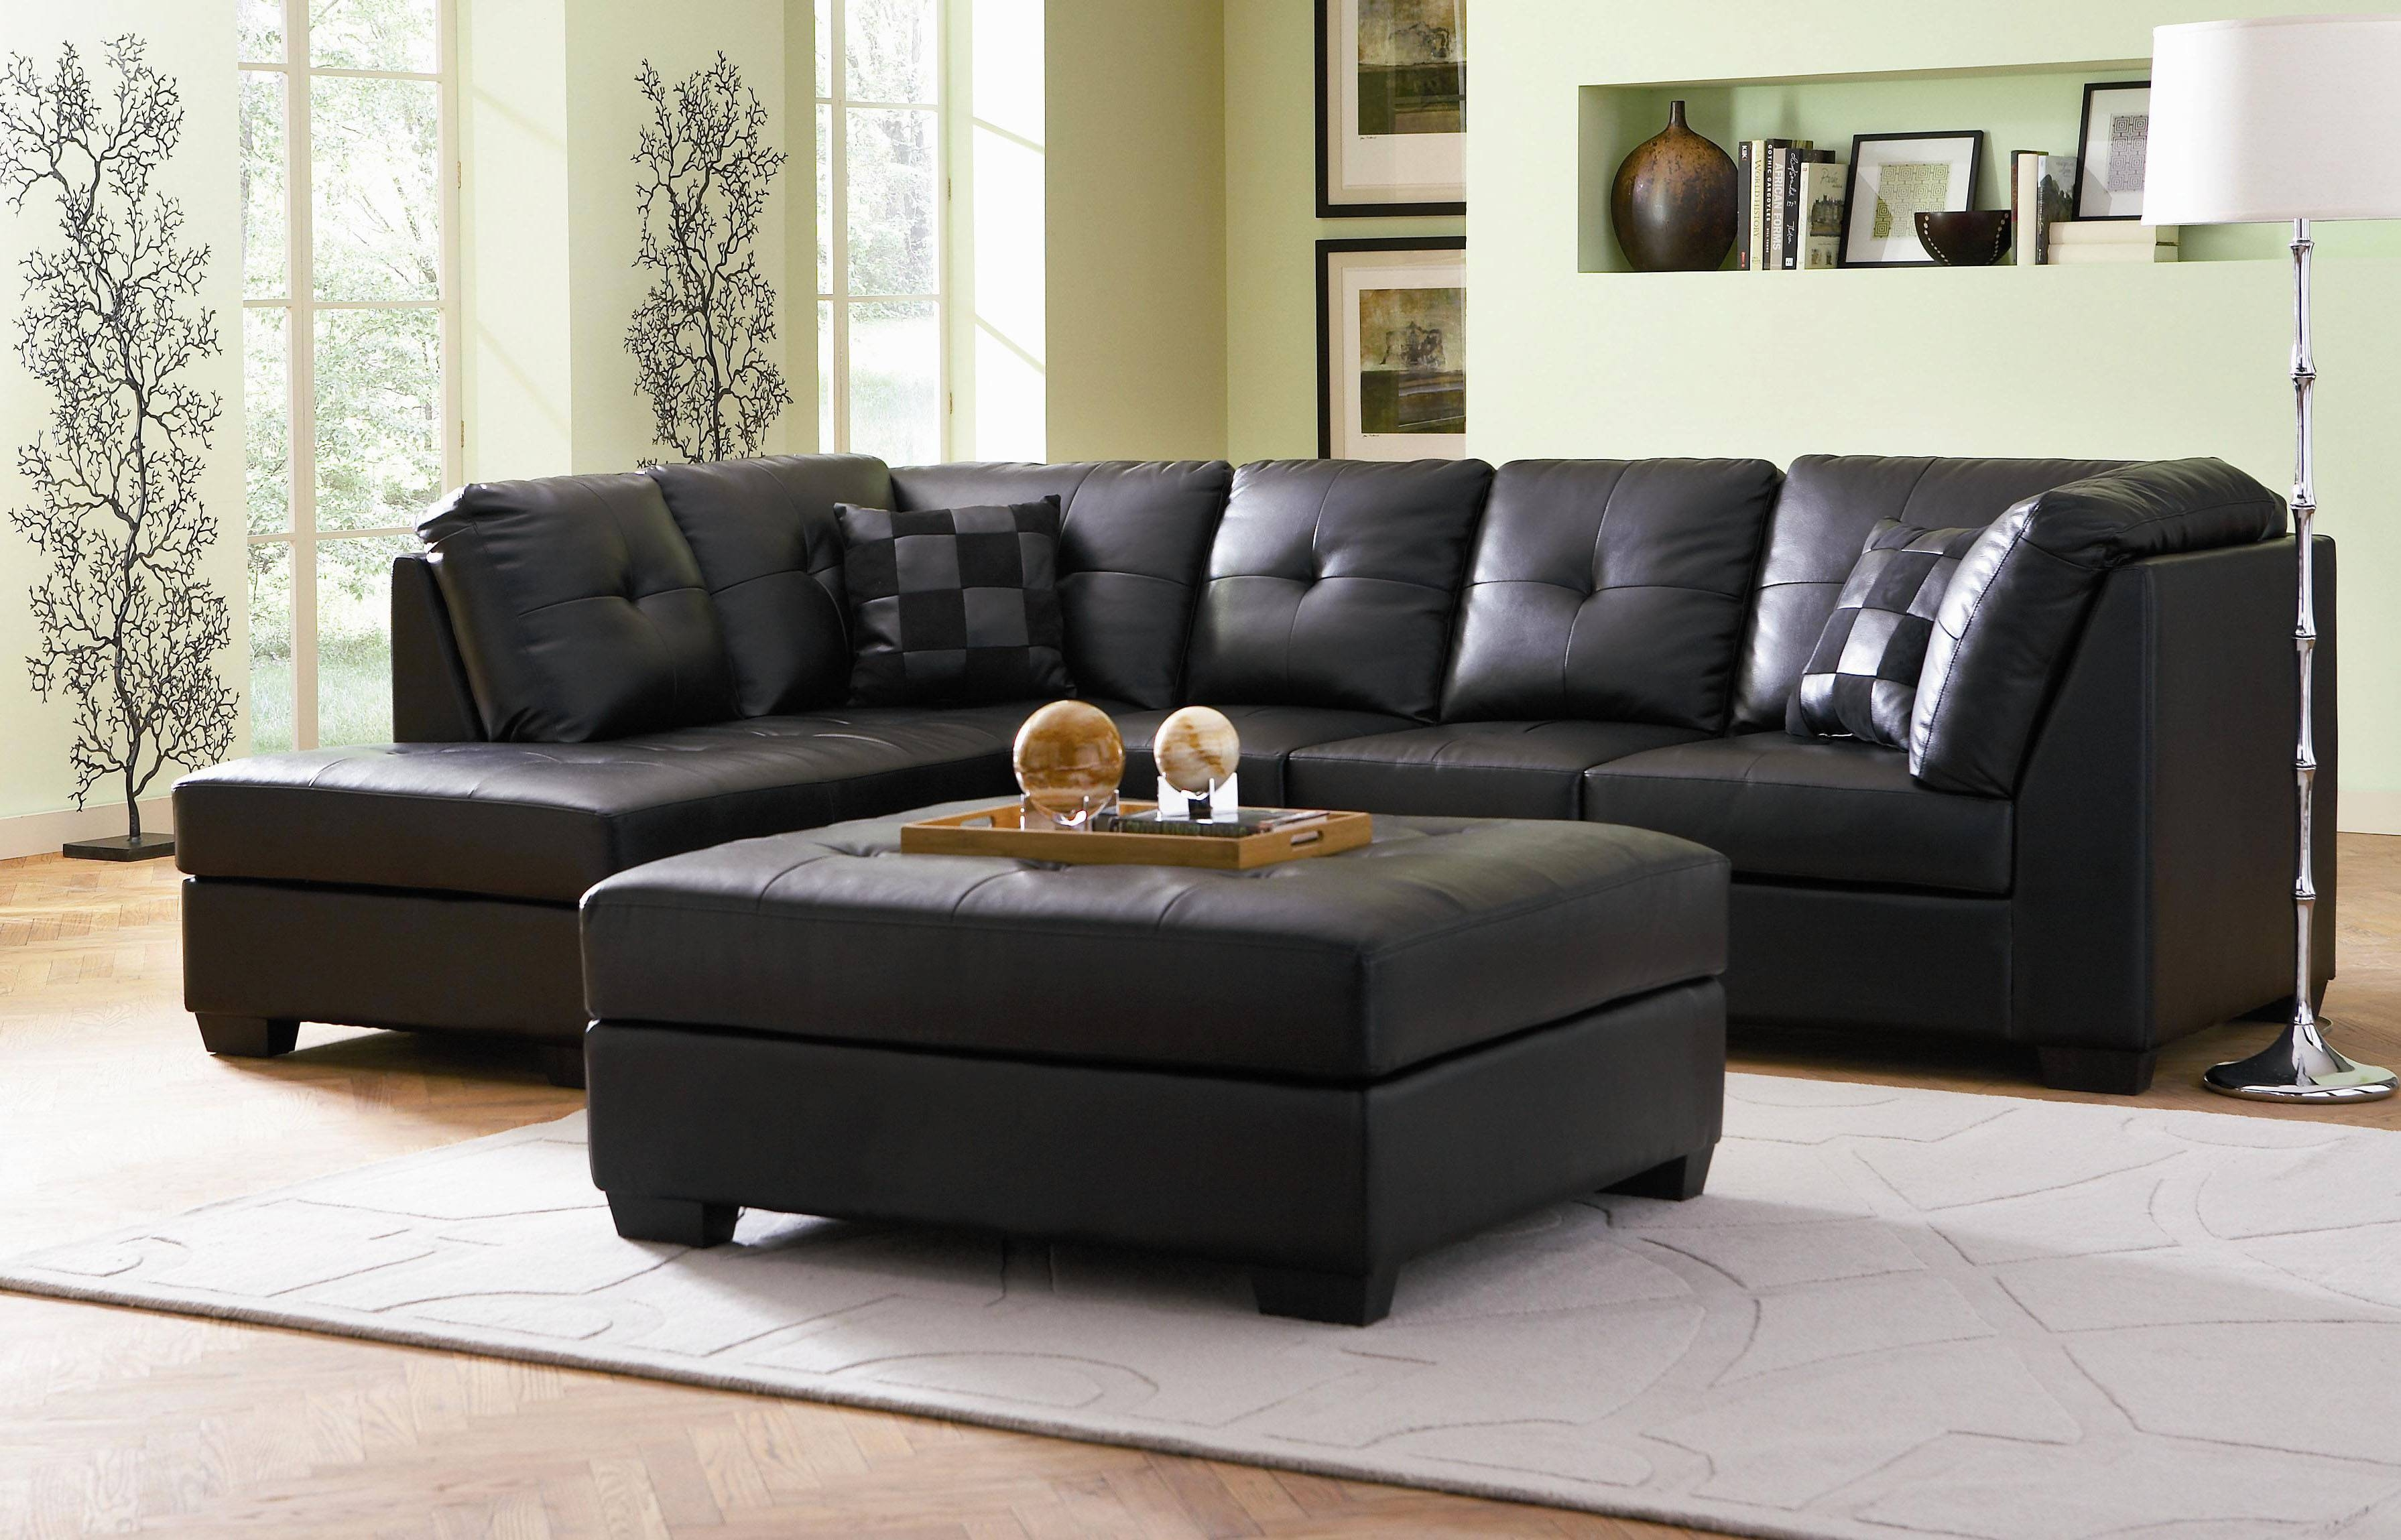 2017 Popular Apartment Sectional Sofa With Chaise